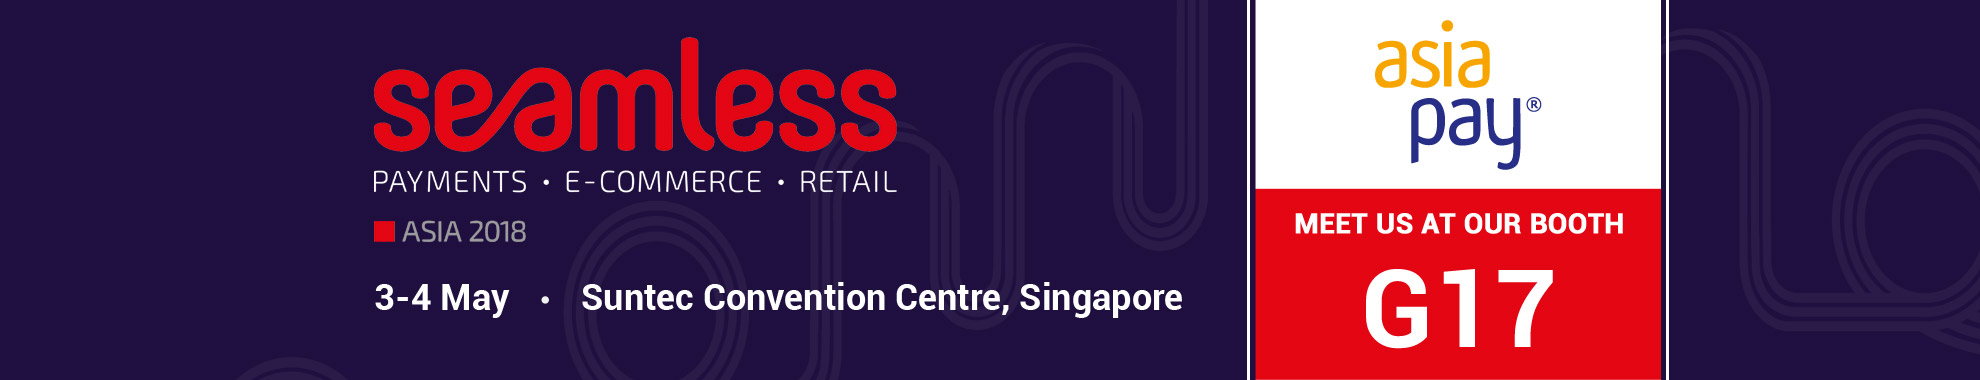 Seamless Asia 2018, 3 - 4 May 2018, Suntec Convention Centre, Singapore - Meet Us at our booth G17 - AsiaPay